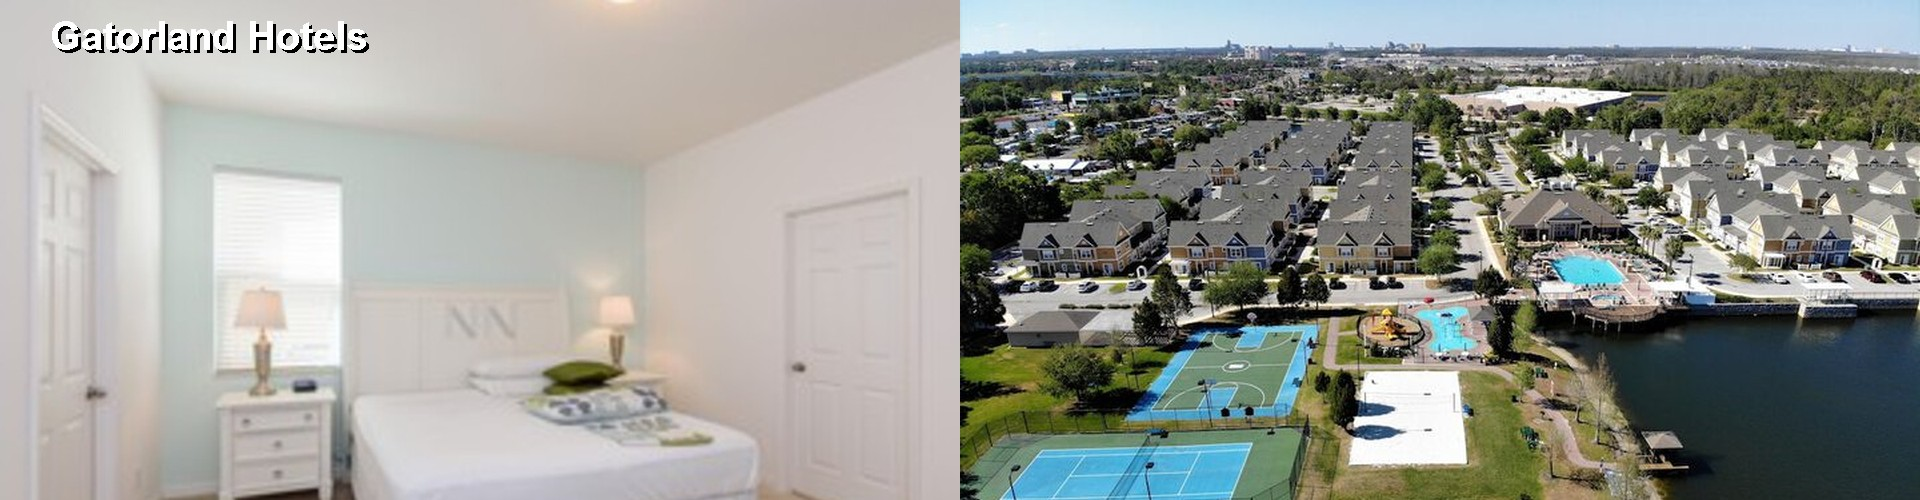 3 Best Hotels near Gatorland